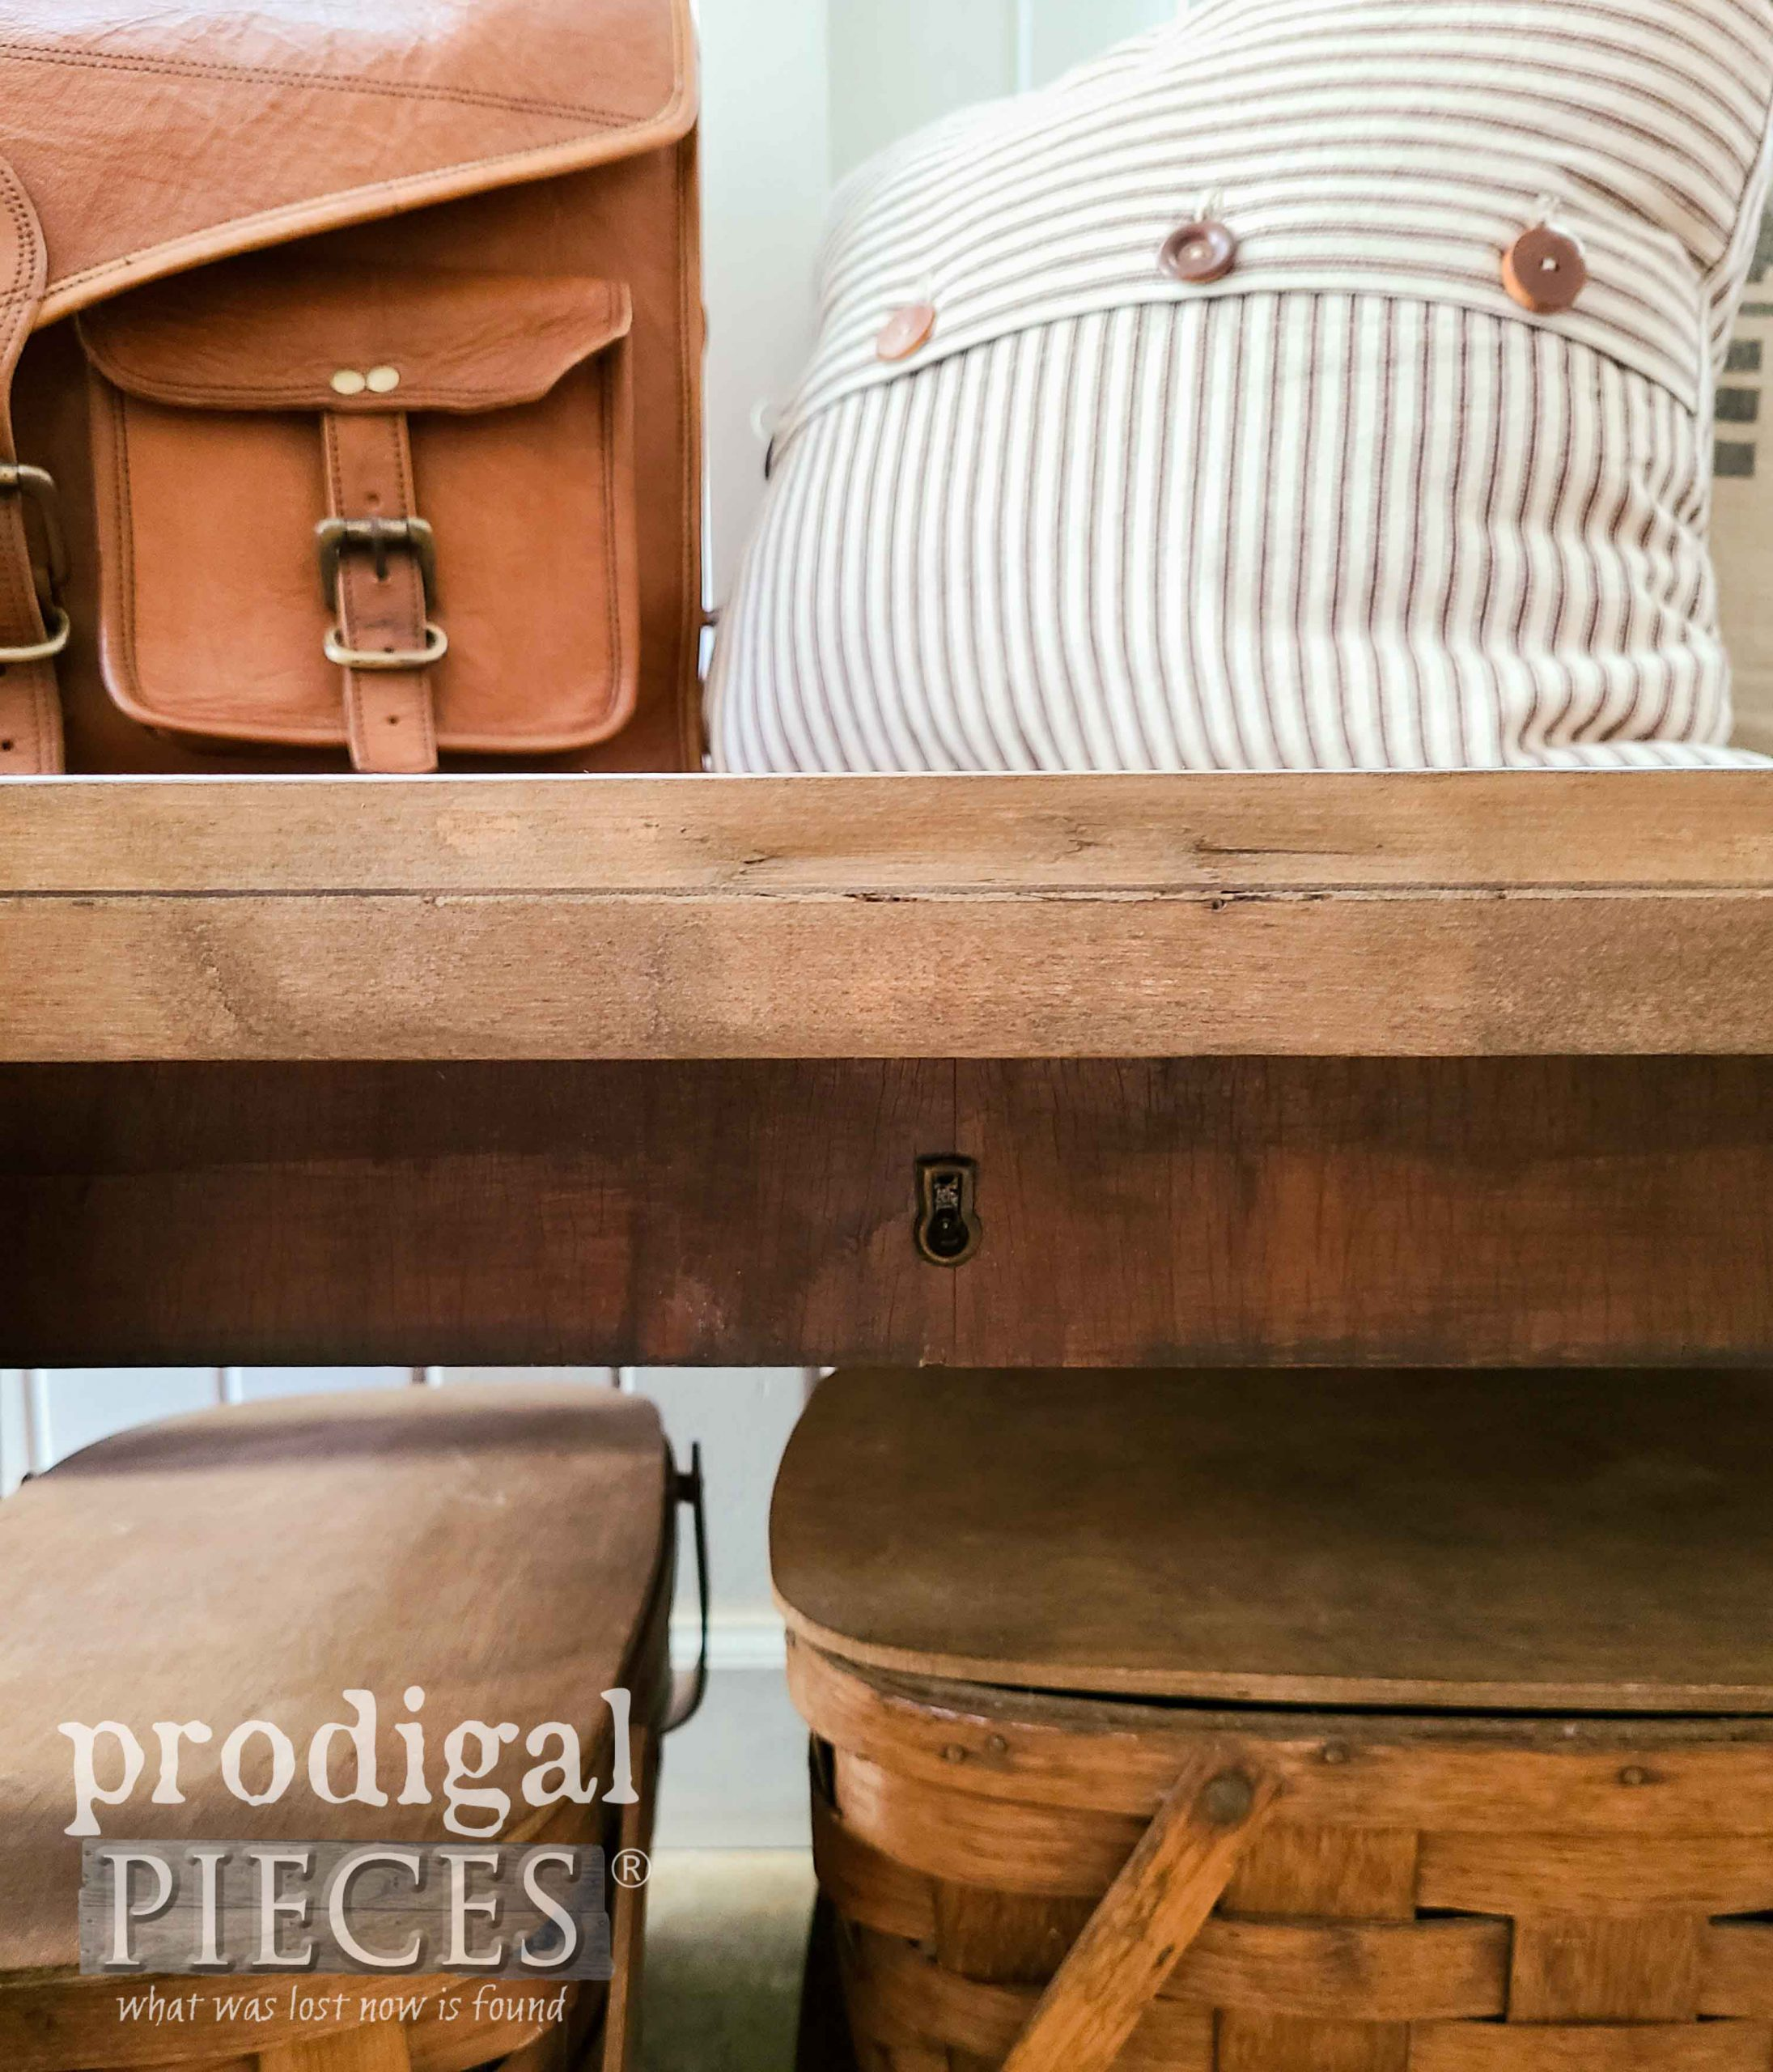 Reclaimed Drawer Fronts as Bench Skirt by Larissa of Prodigal Pieces   prodigalpieces.com #prodigalpieces #diy #reclaimed #furniture